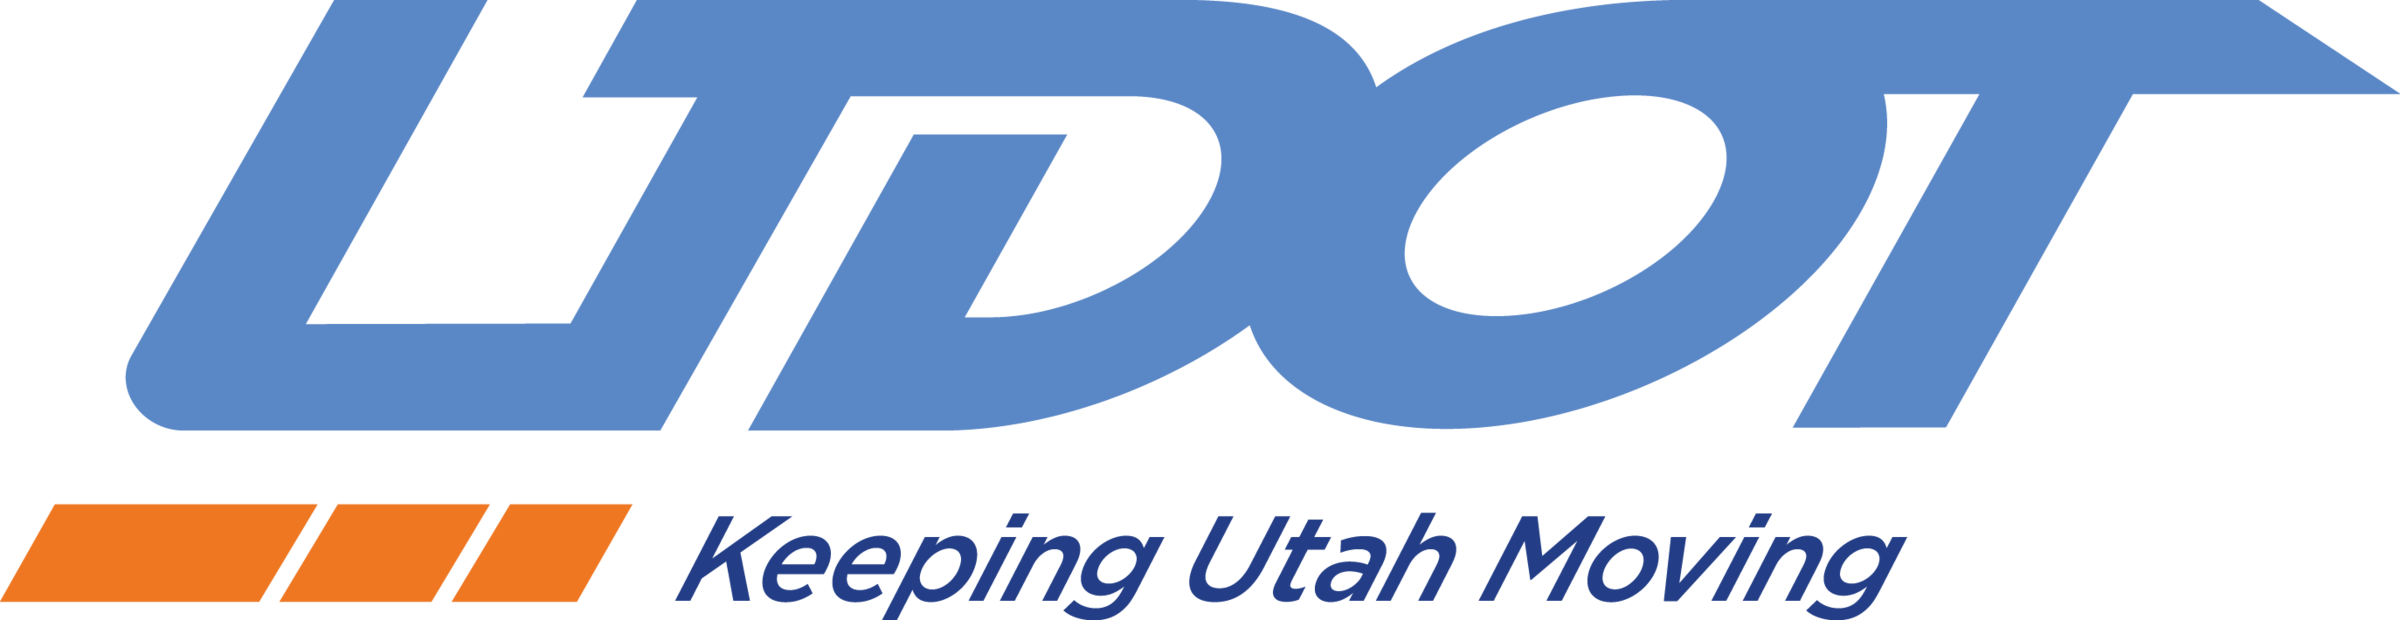 UDOT to Sell 14 Surplus Properties July 13-20; SVN Auction Services to Coordinate Online Auction